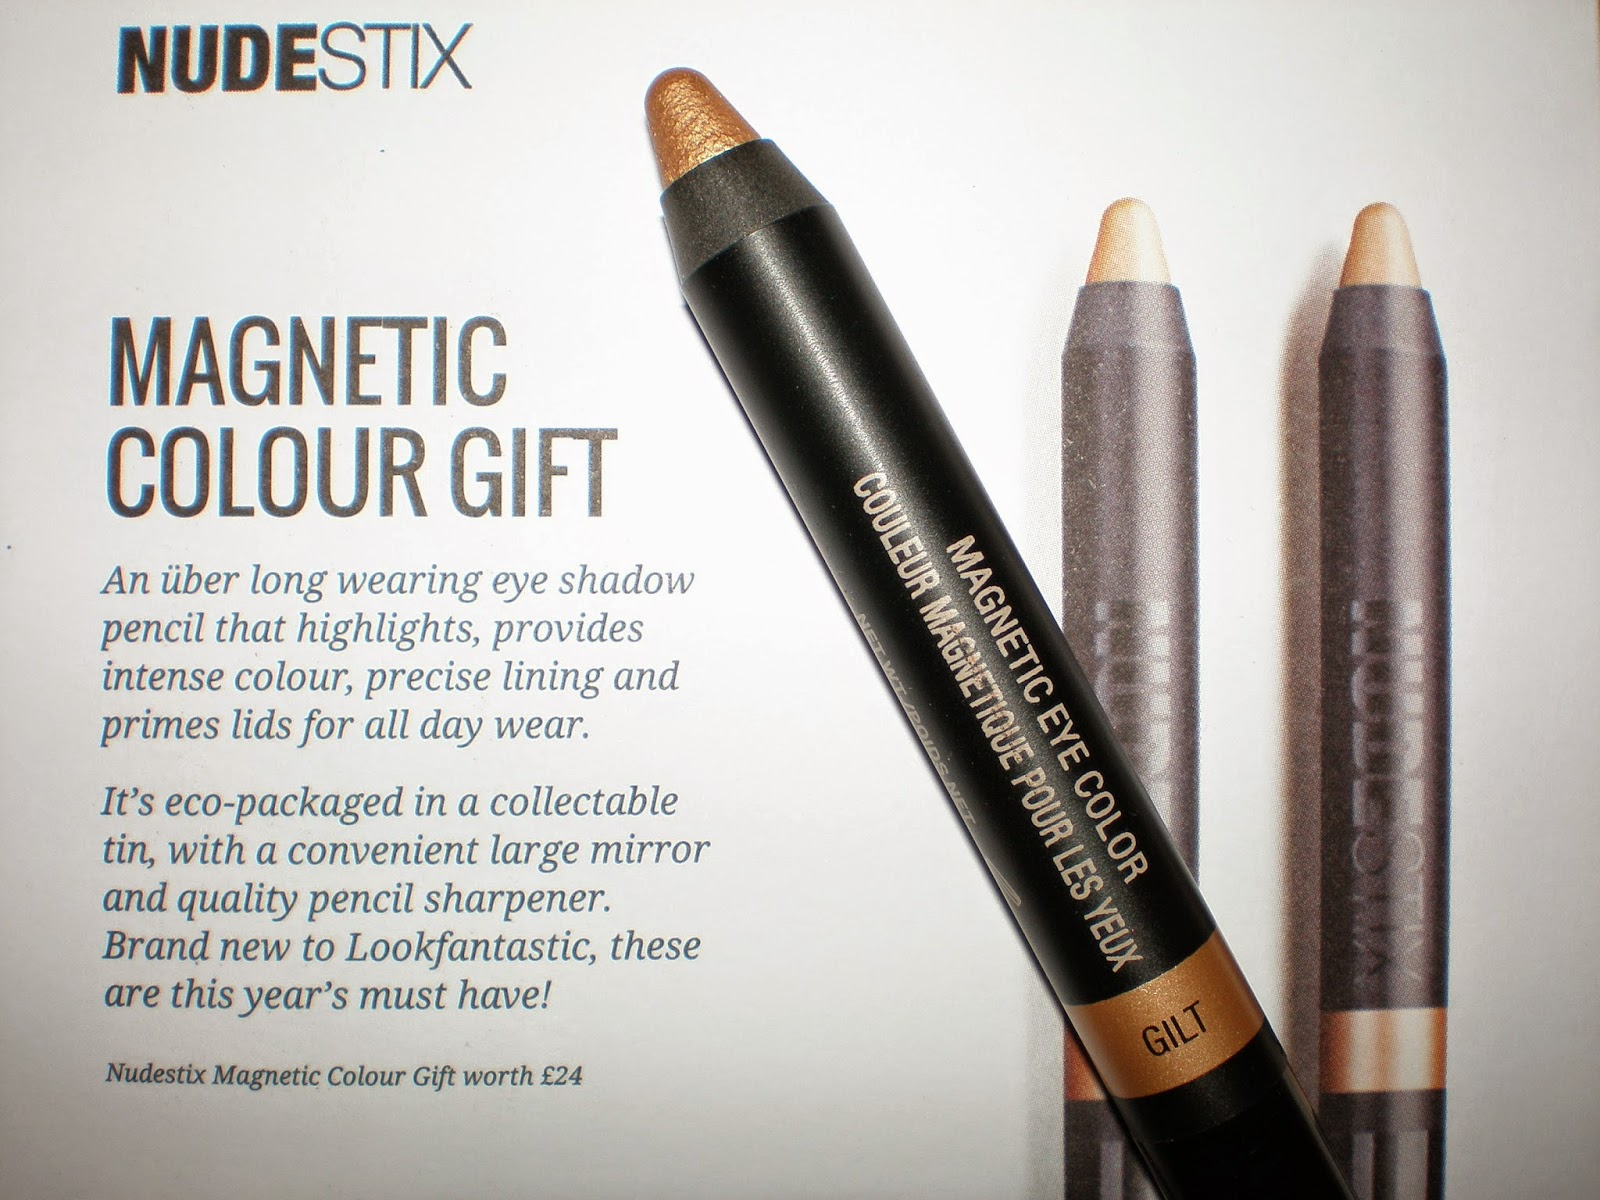 NudeStix Magnetic Colour Eyeshadow Penci in Gilt